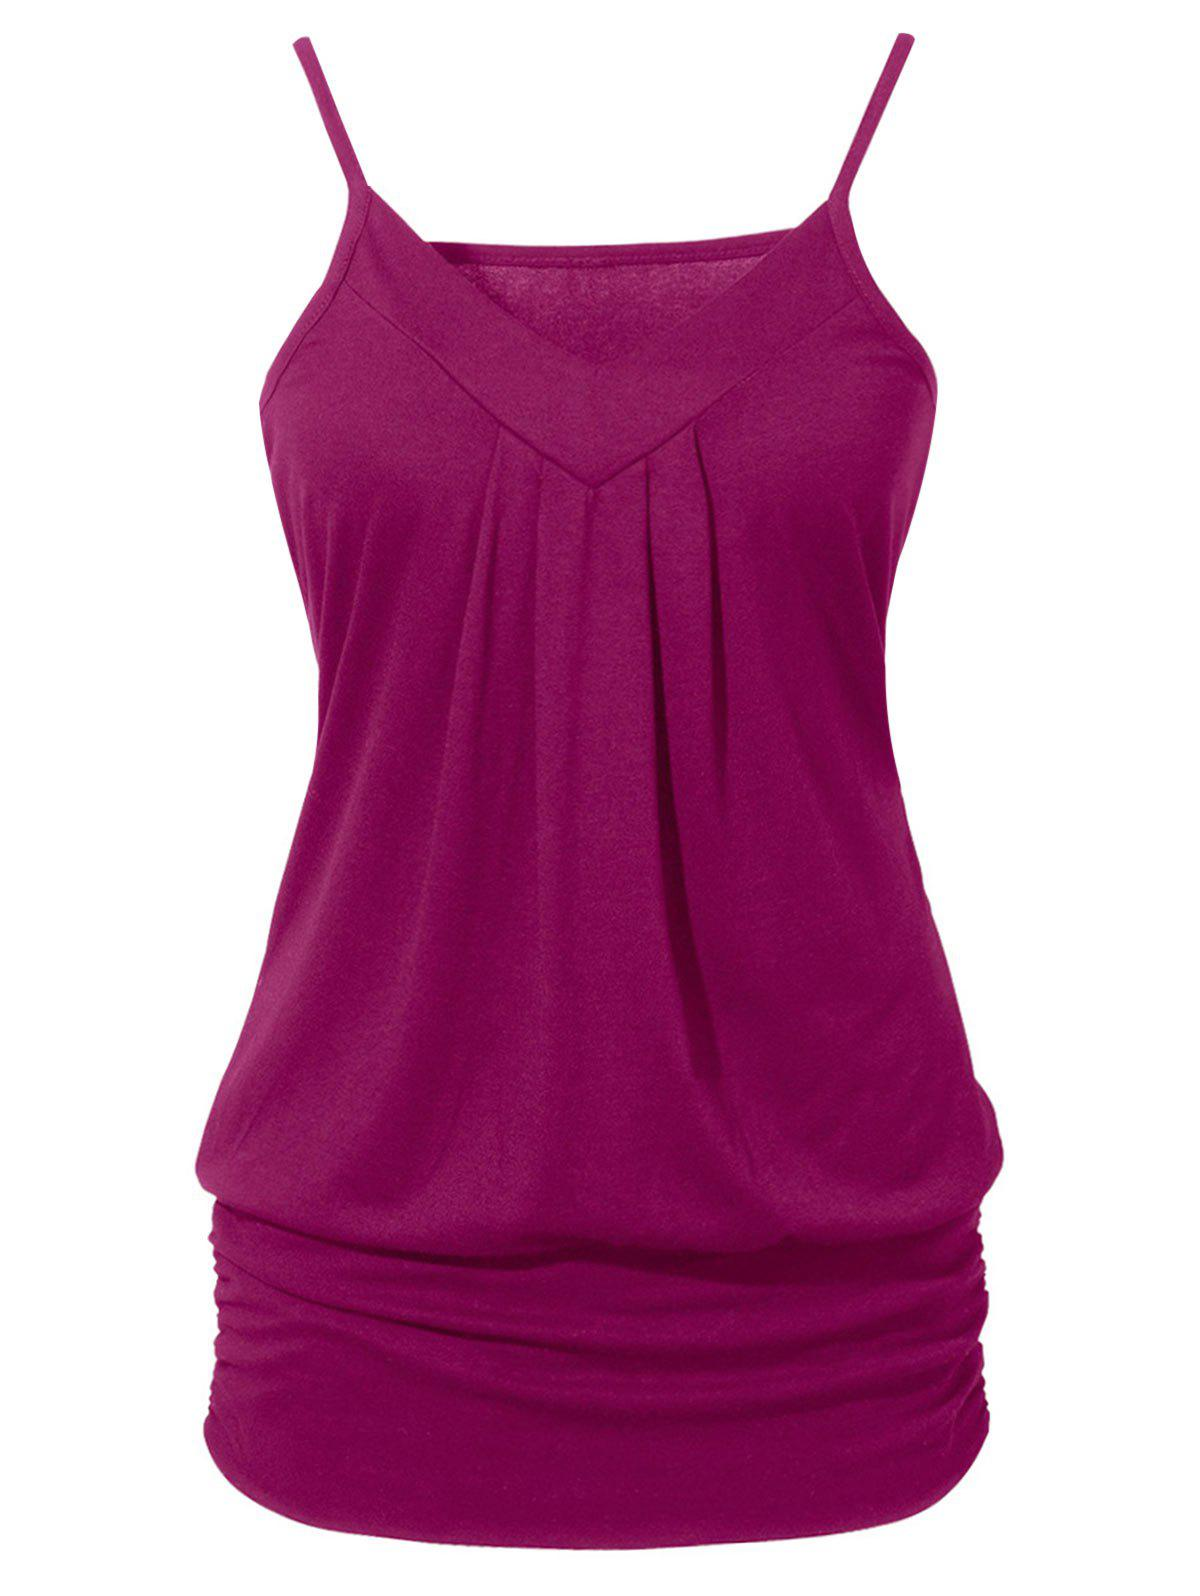 Ruched Solid Color Cami Top - DARK CARNATION PINK S